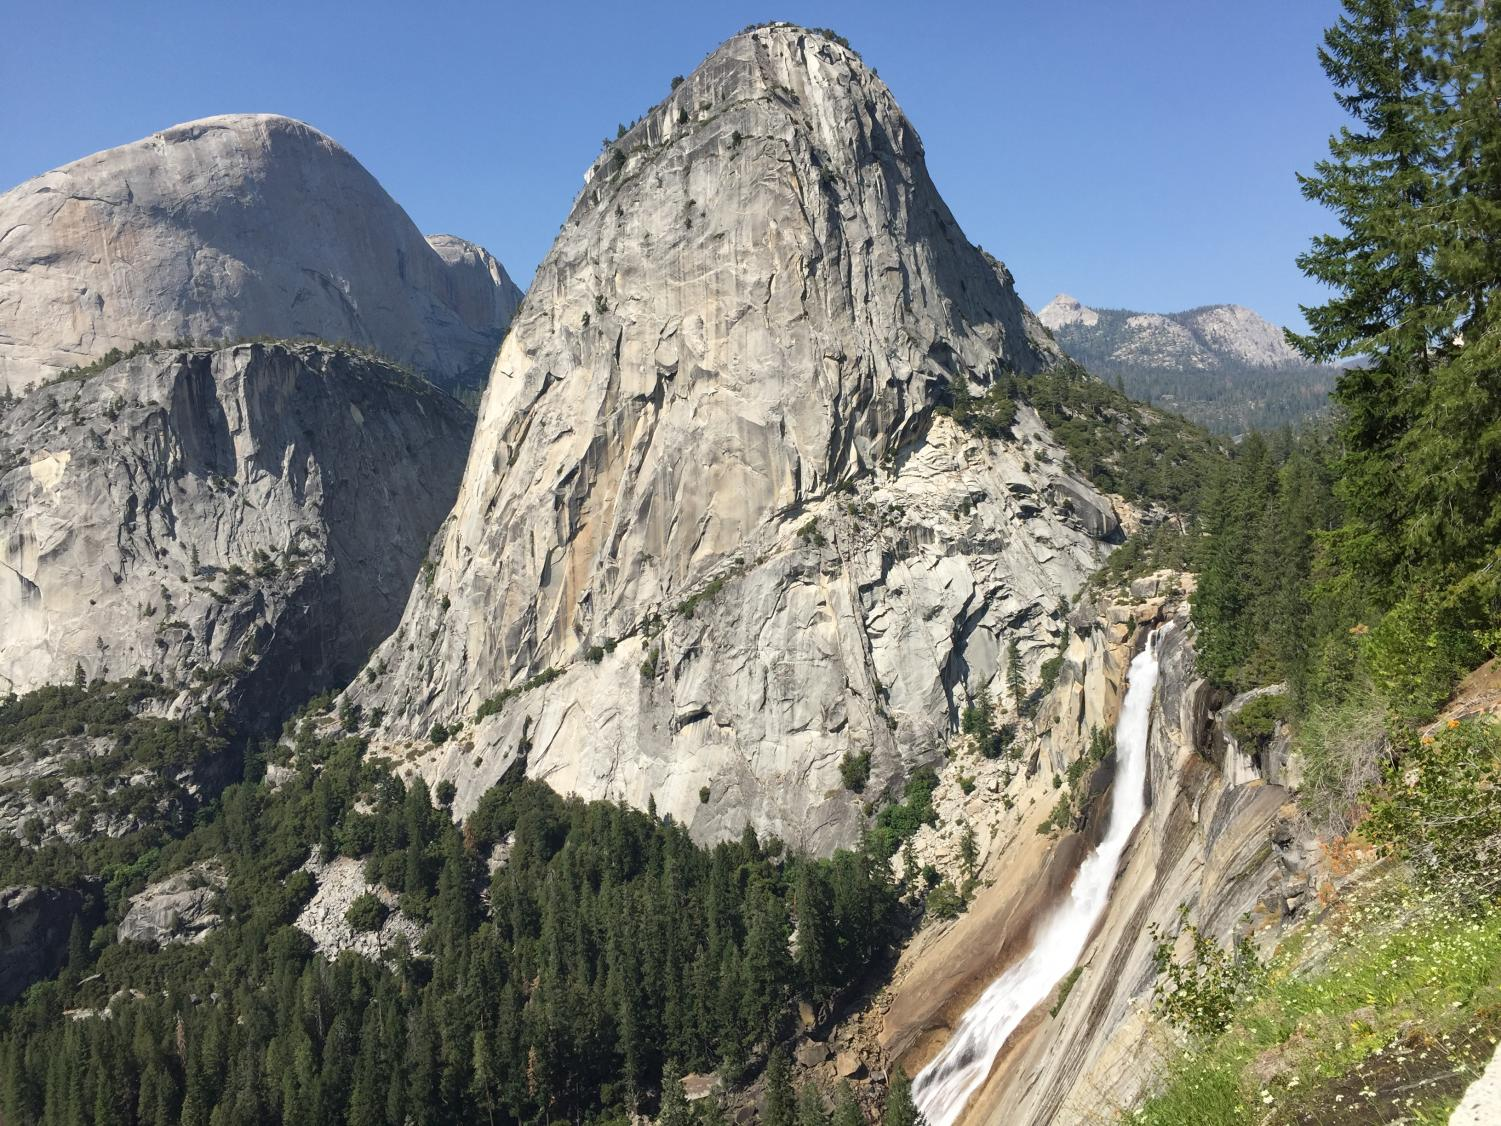 Pushing yourself can have big rewards. Seeing this beautiful view of Yosemite National Park would not have been possible without a tough climb.